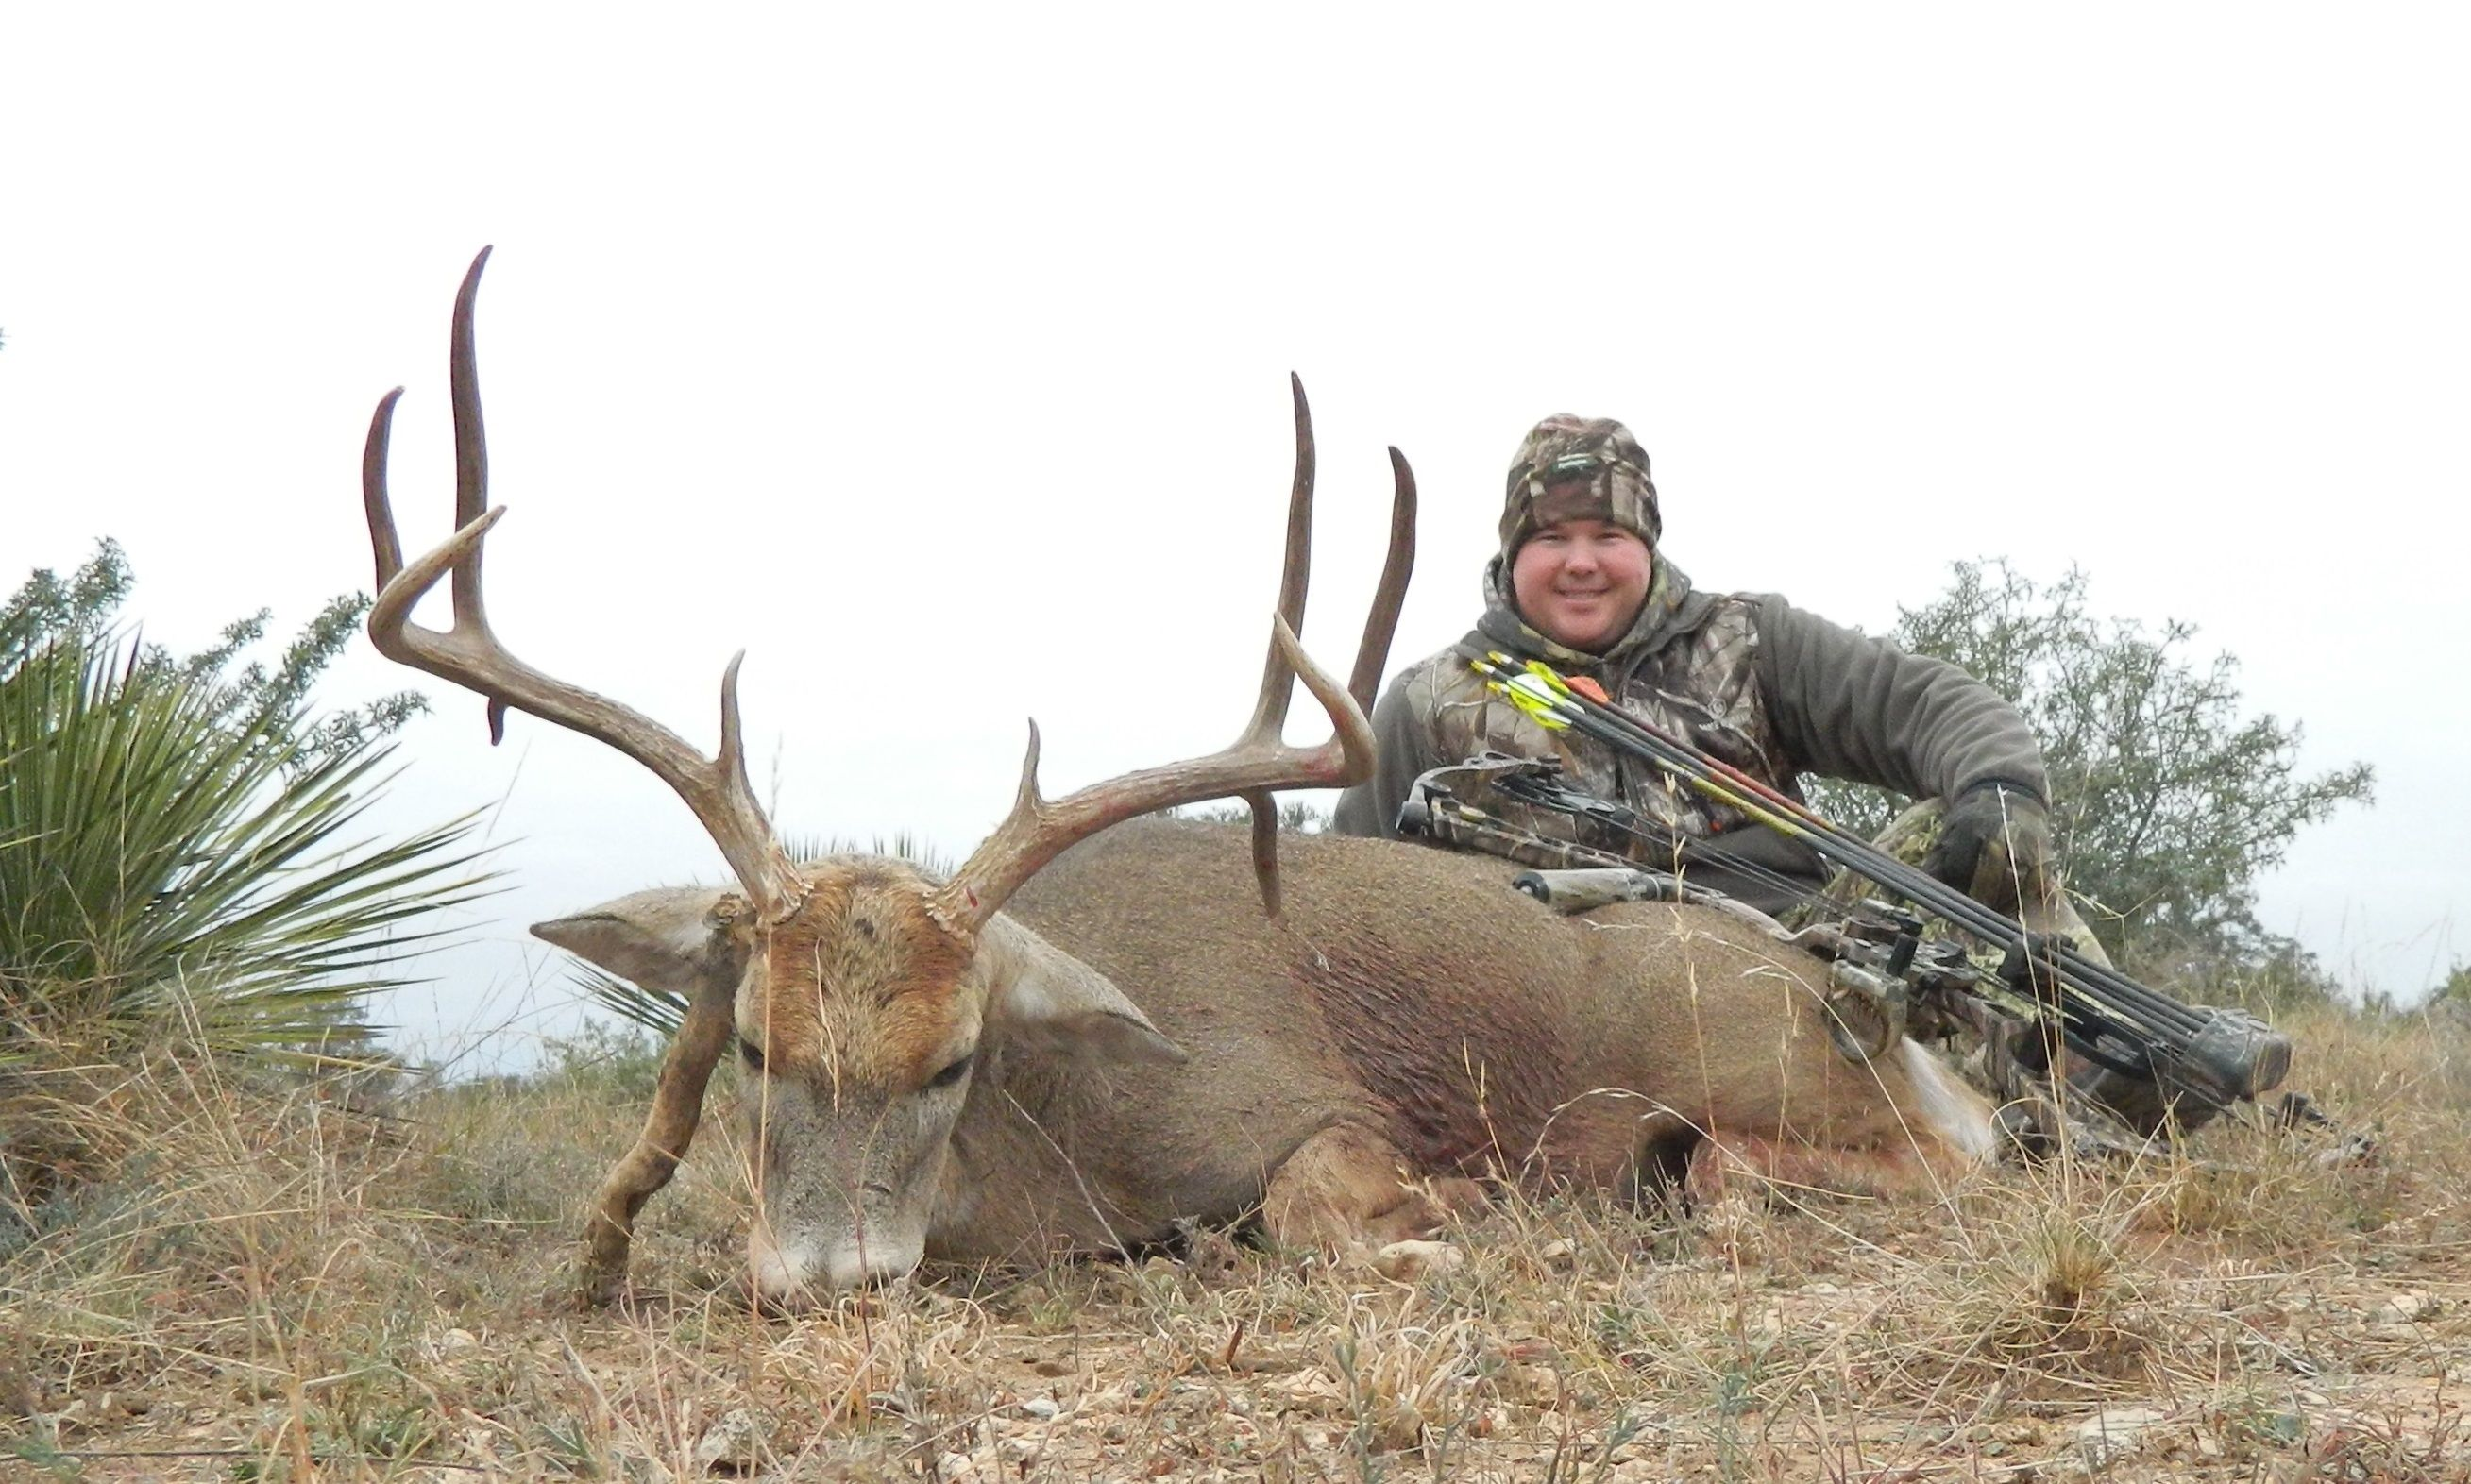 Drop Tine Bow Whitetail Buck Whitetail Hunts